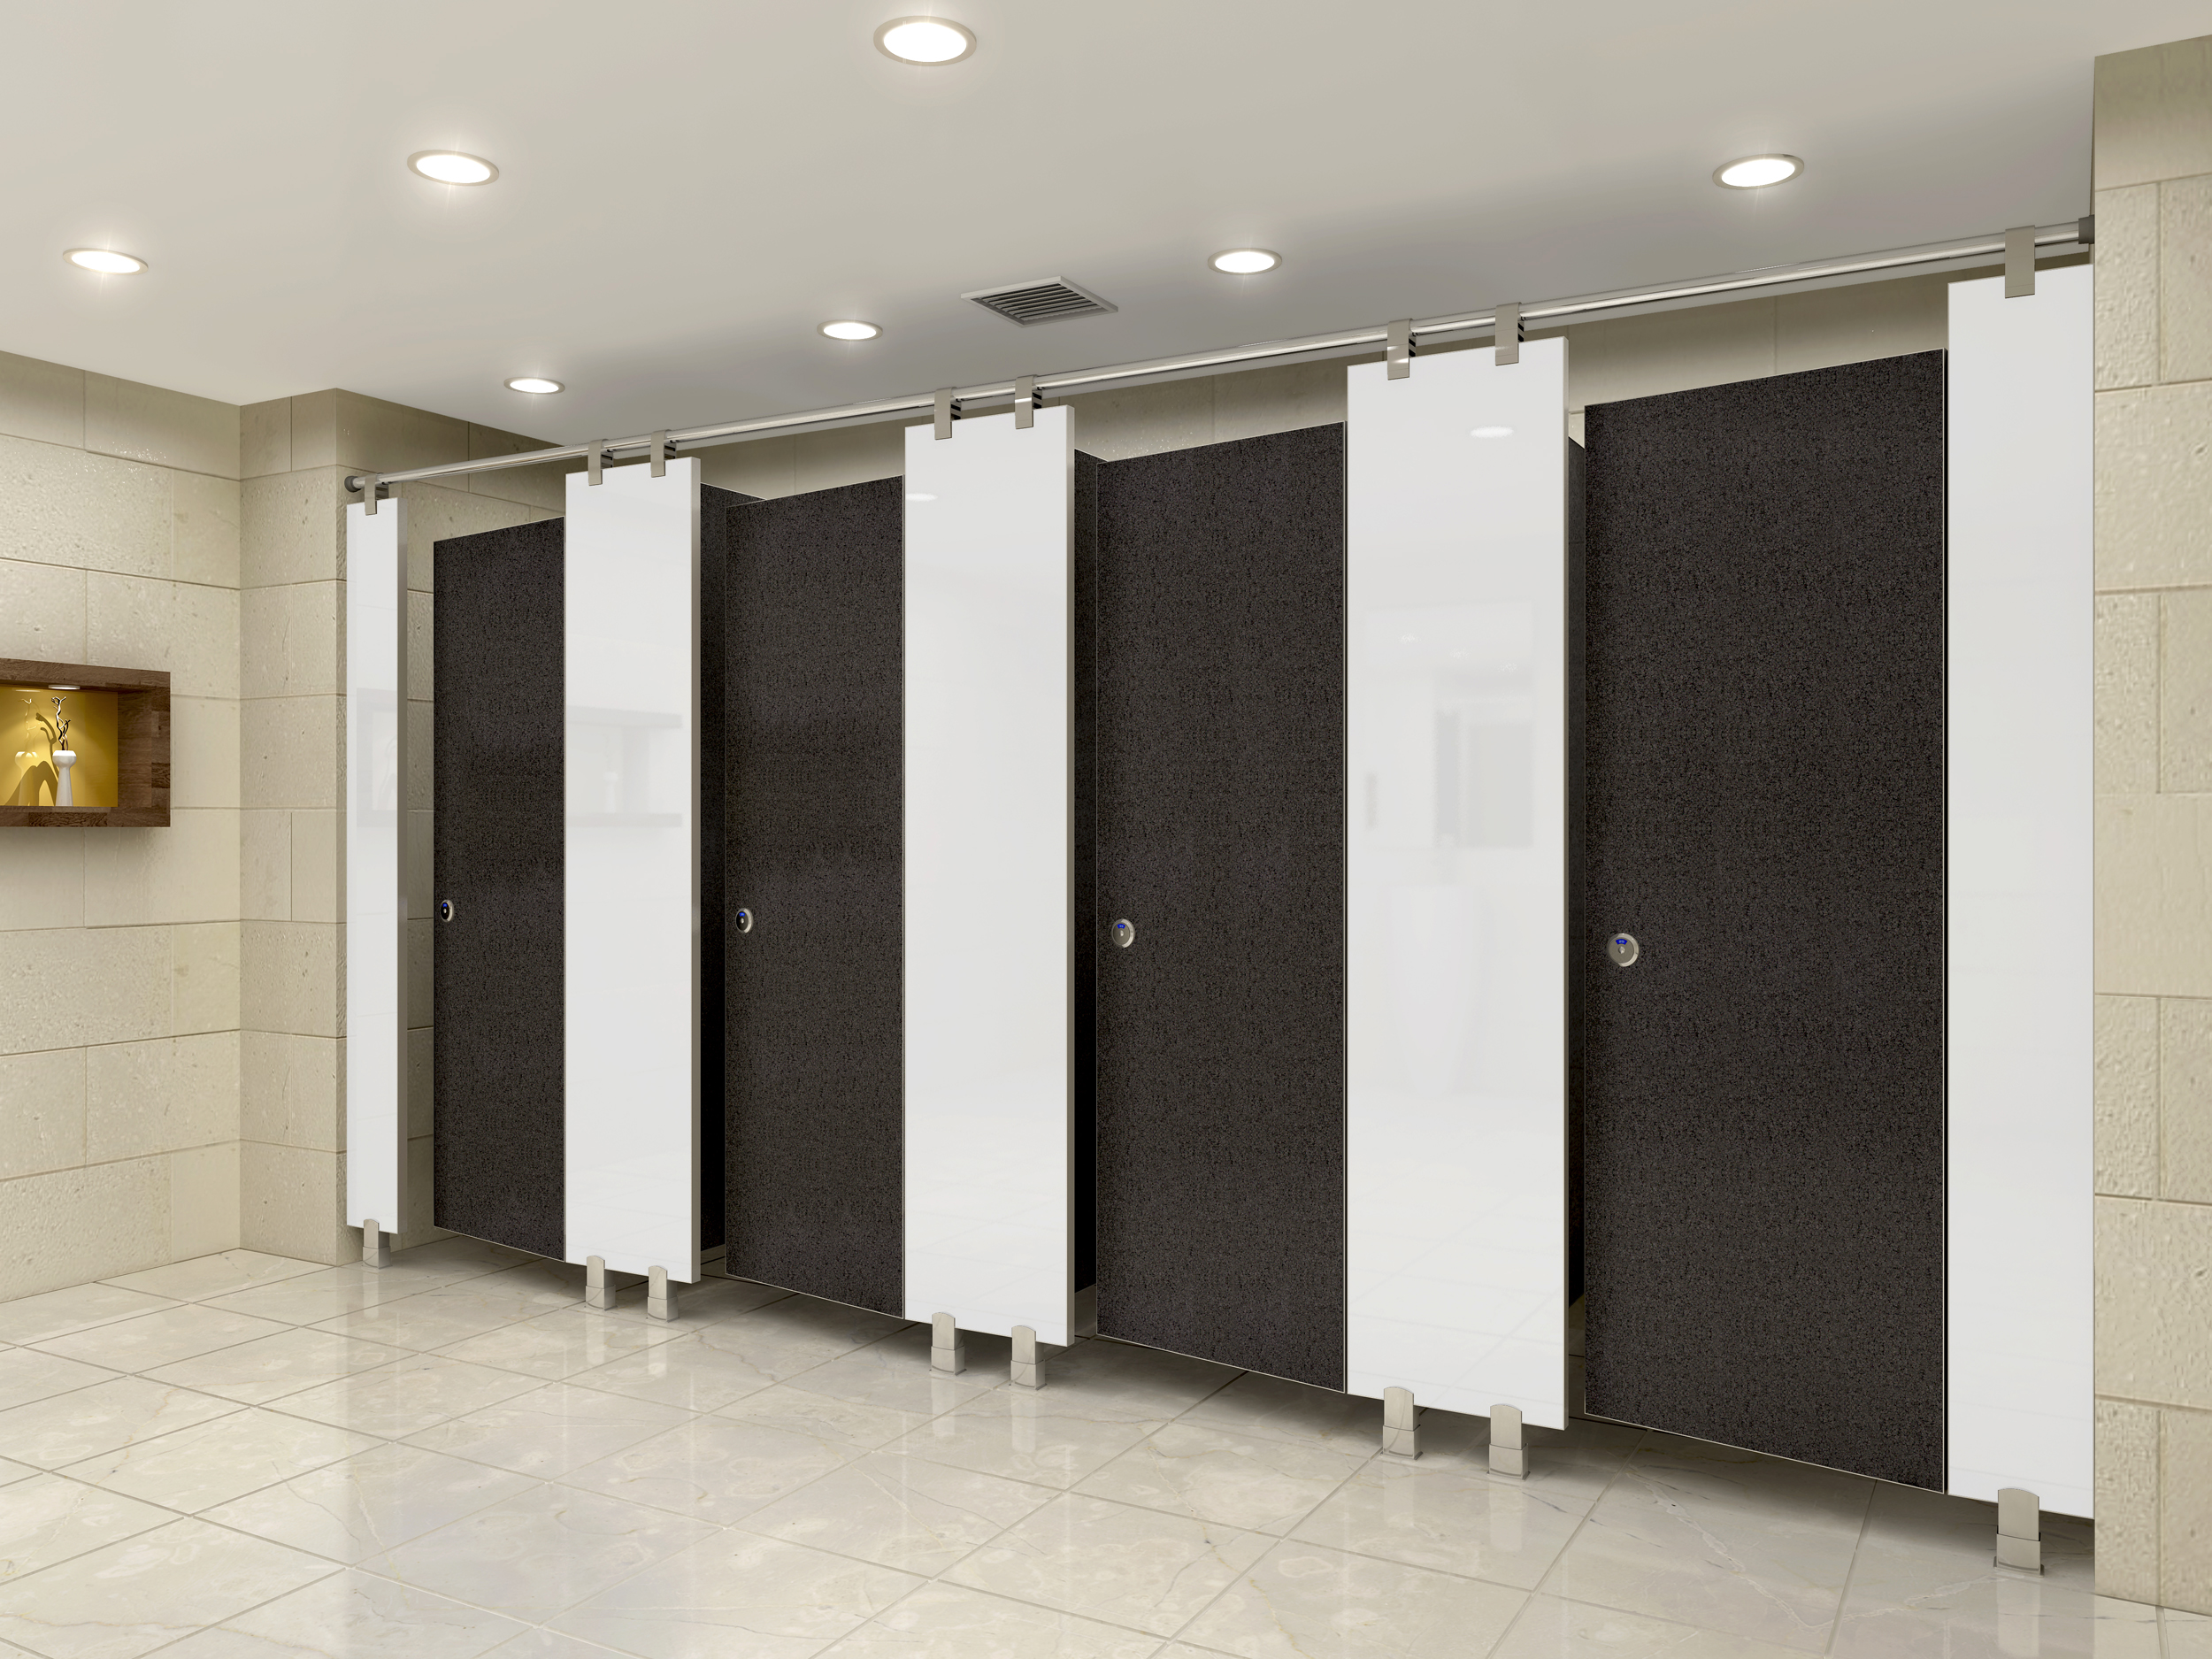 Sophisticated Bathroom Partition Walls Of Ceiling Hung Aka Floating Toilet Partitions These